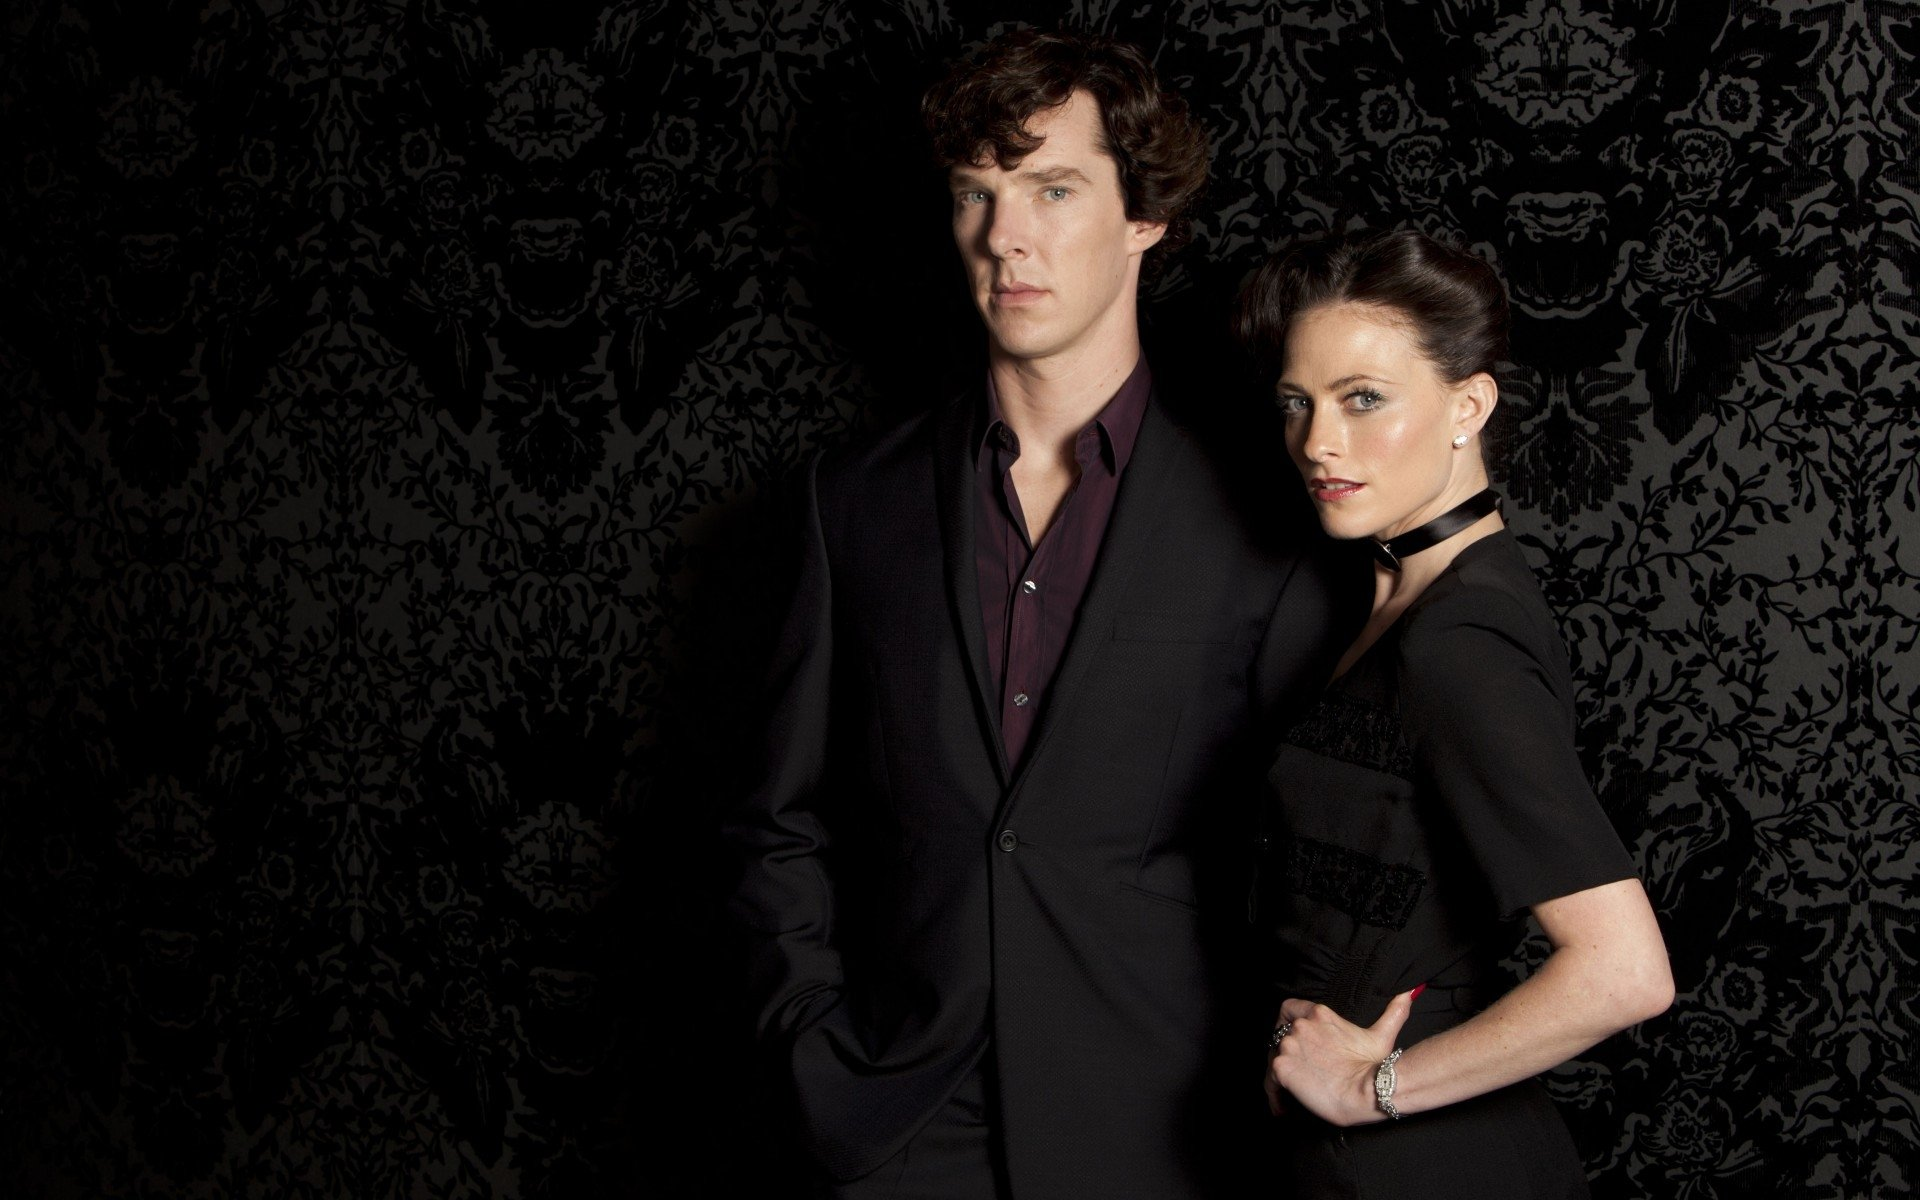 Benedict Cumberbatch Wallpaper Hd: Benedict Cumberbatch & Lara Pulver HD Wallpaper